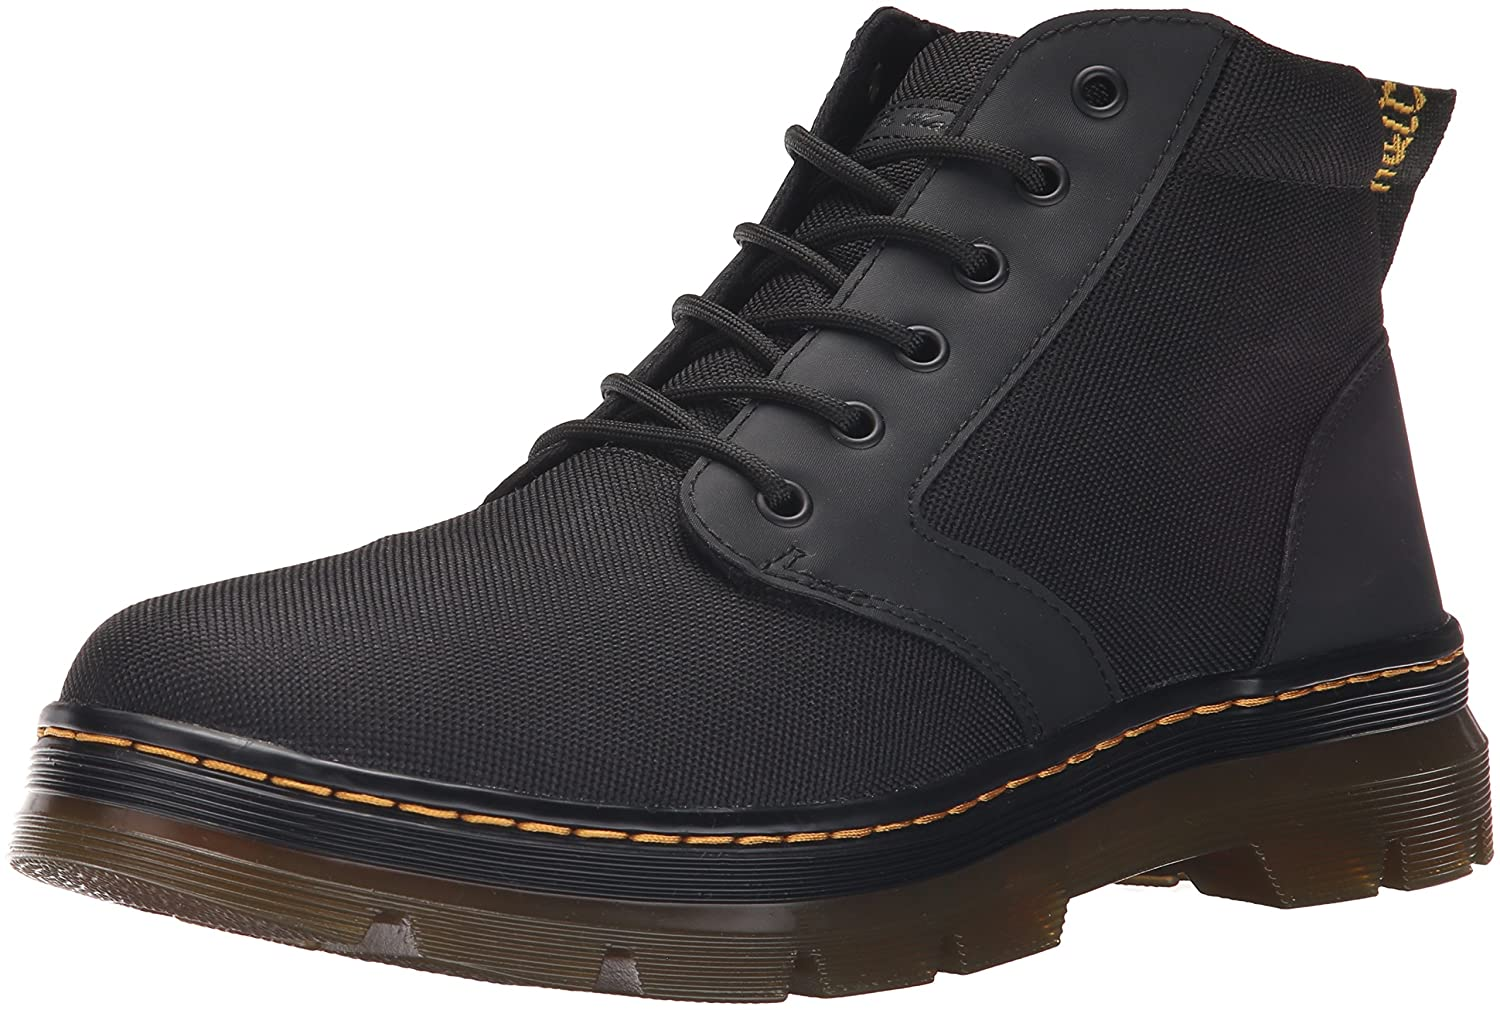 Dr. Black Martens Bonny, B074ZJX5HV Bottines de Ville Mixte Adulte Extra Noir (Black Extra Tough Nylon & Black Rubbery 001) 414a9b4 - shopssong.space